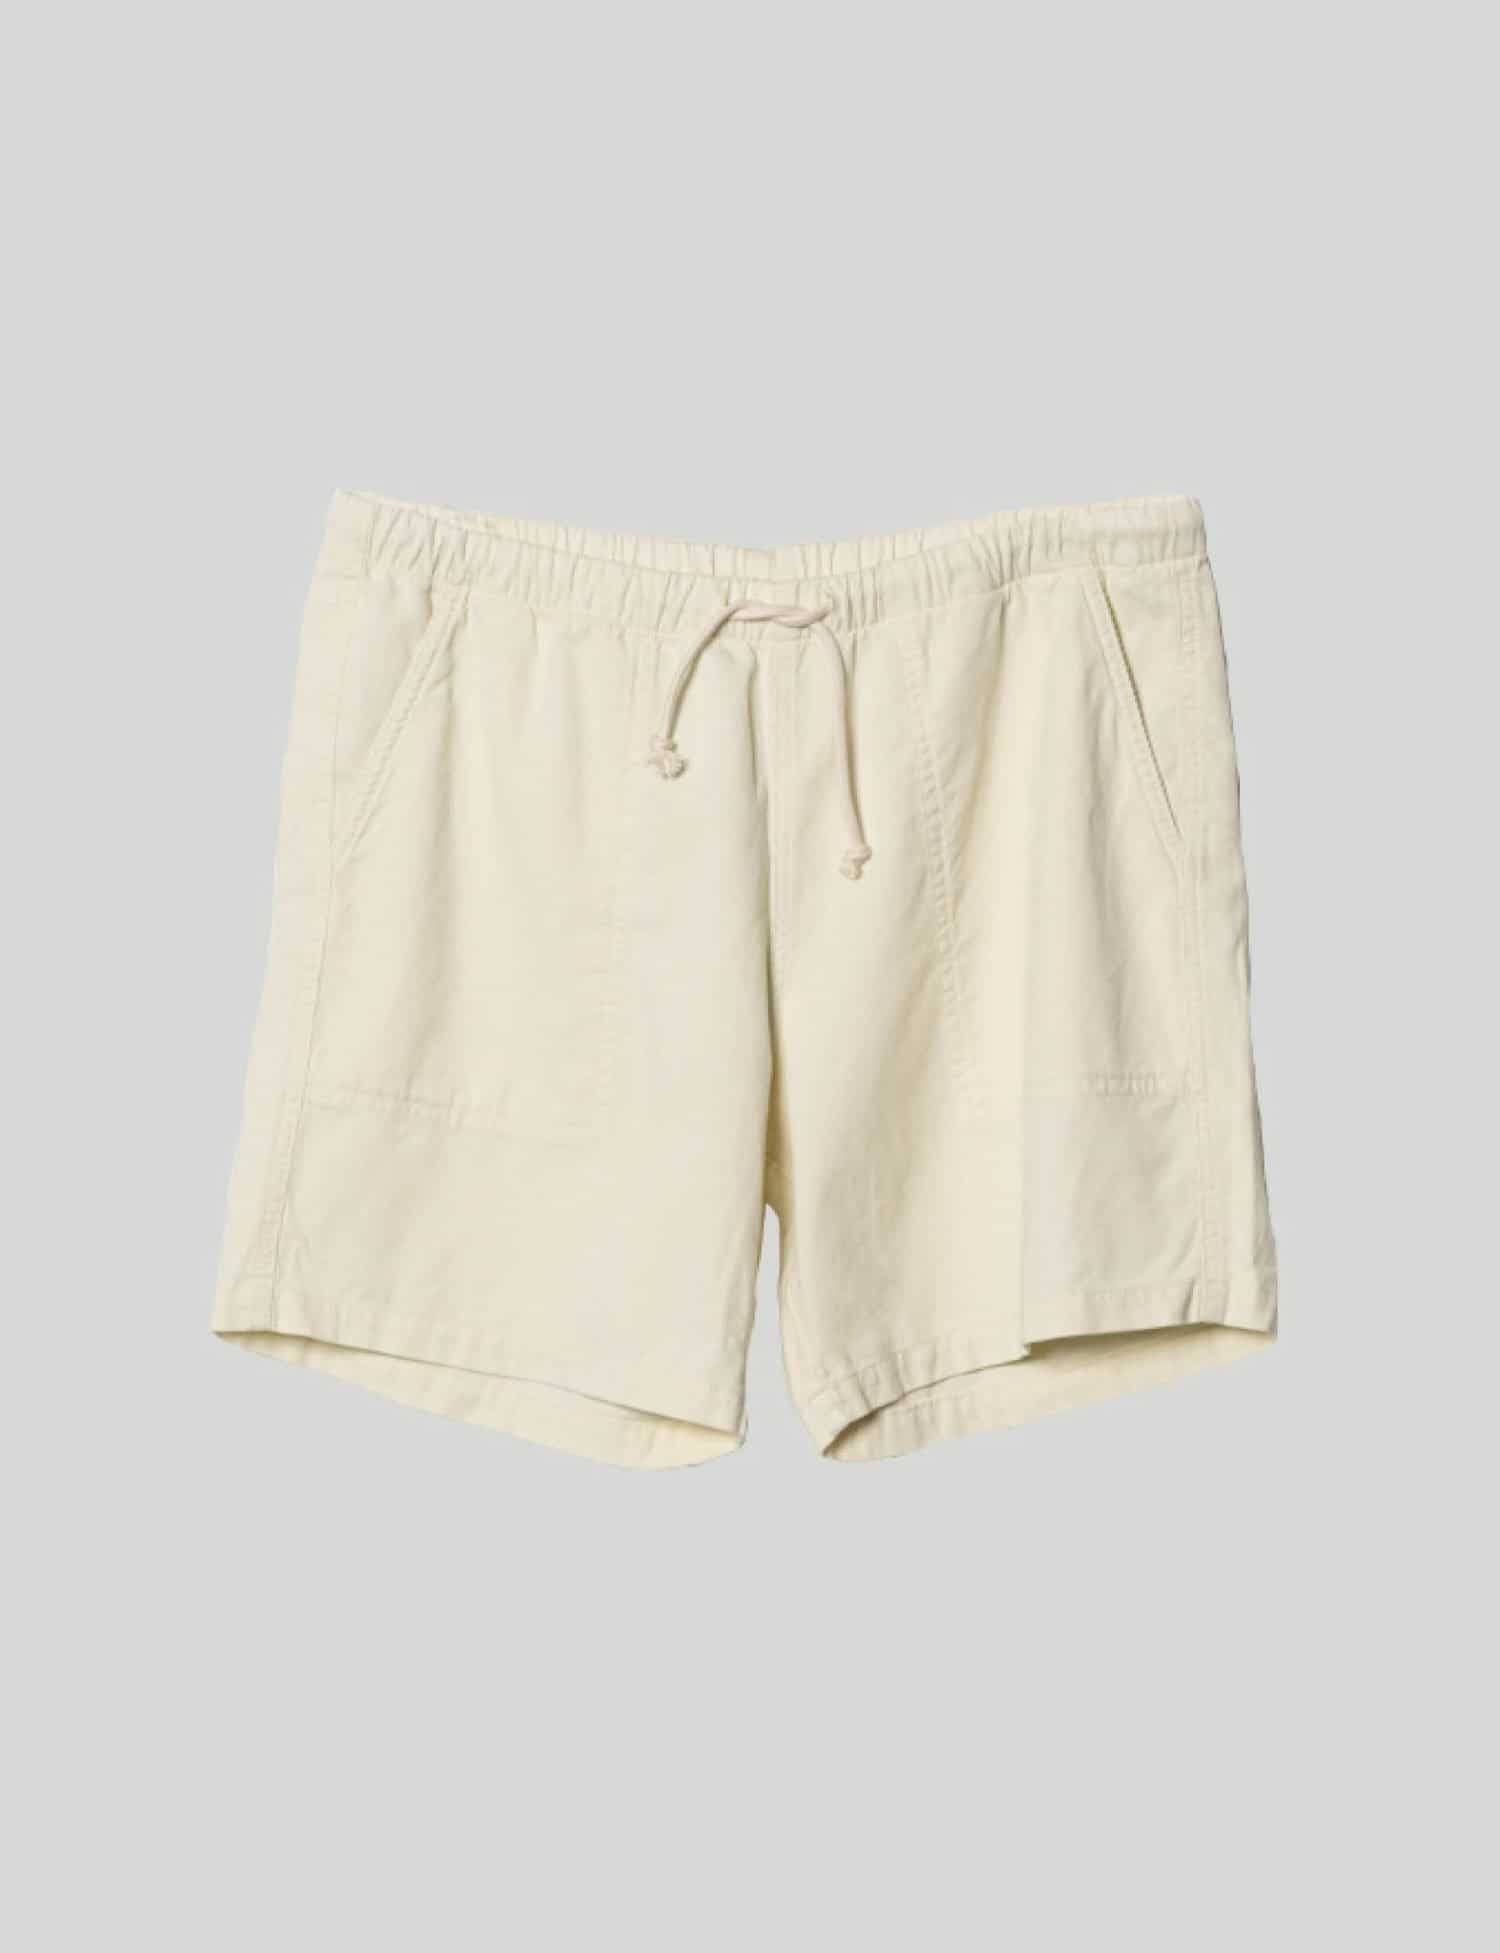 Castart - La Paz - Formigal Shorts - Off-white